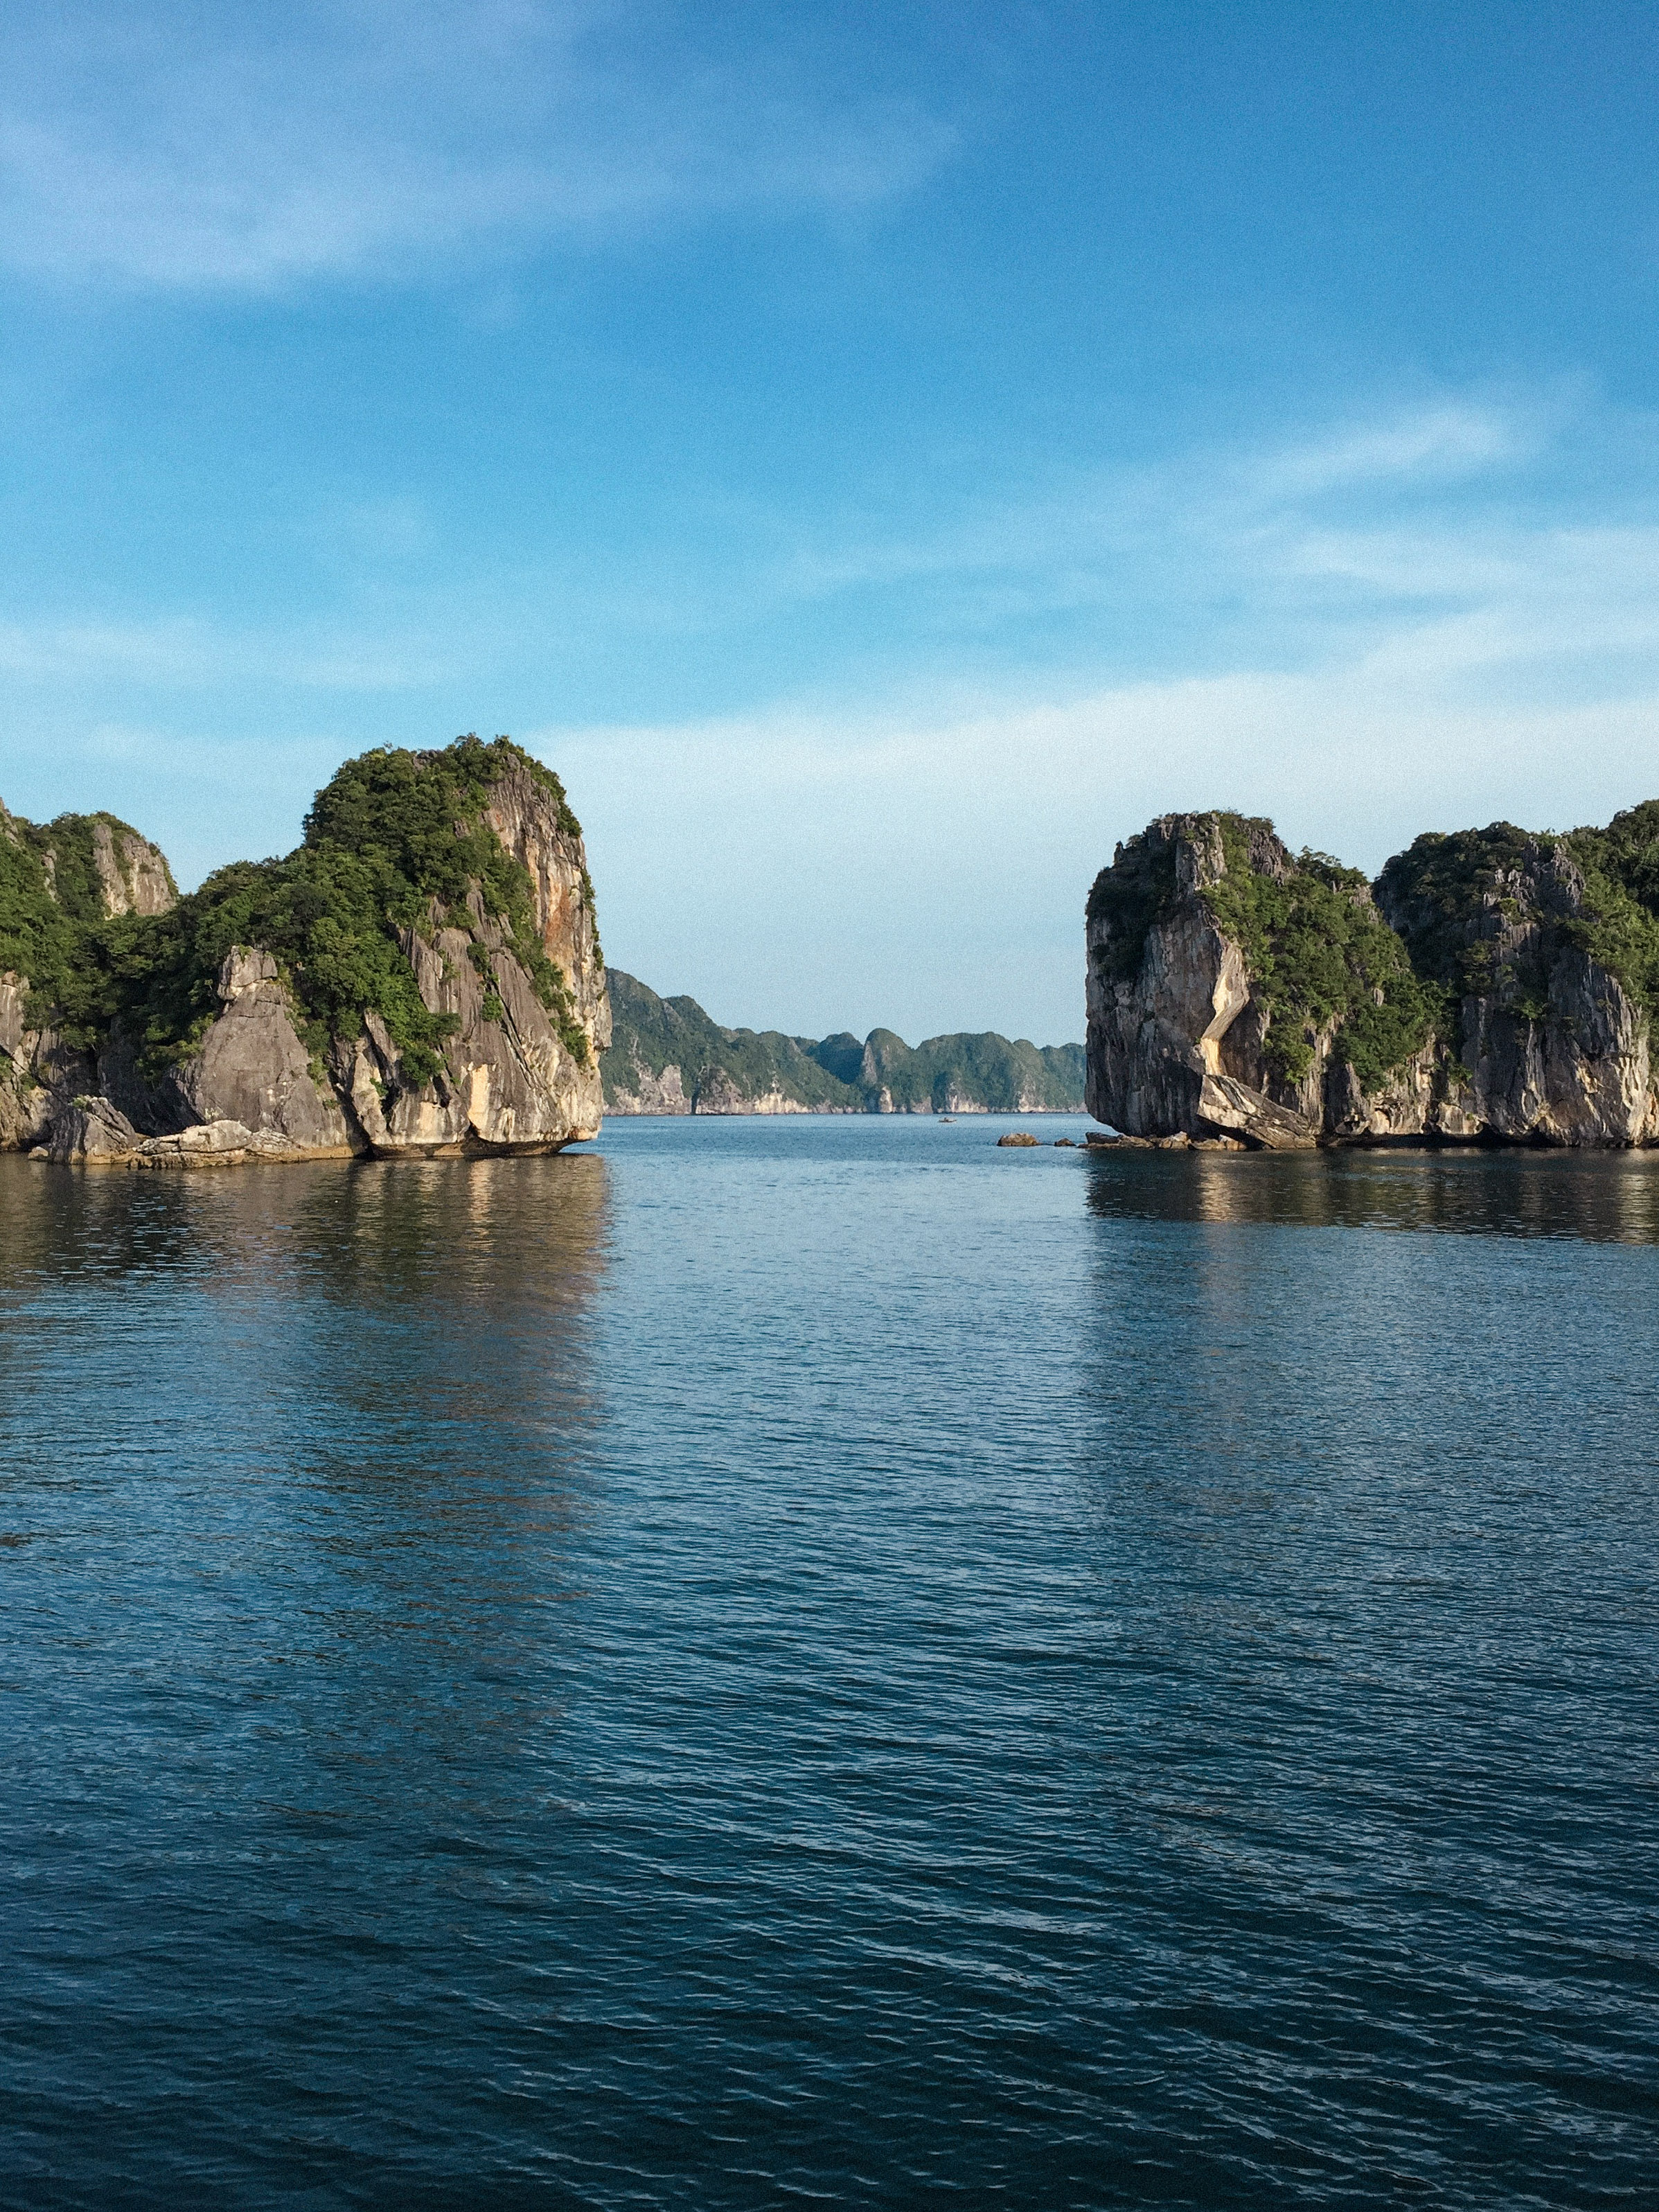 Lesly Lotha_Ha Long Bay_Vietnam 05_2017.jpg